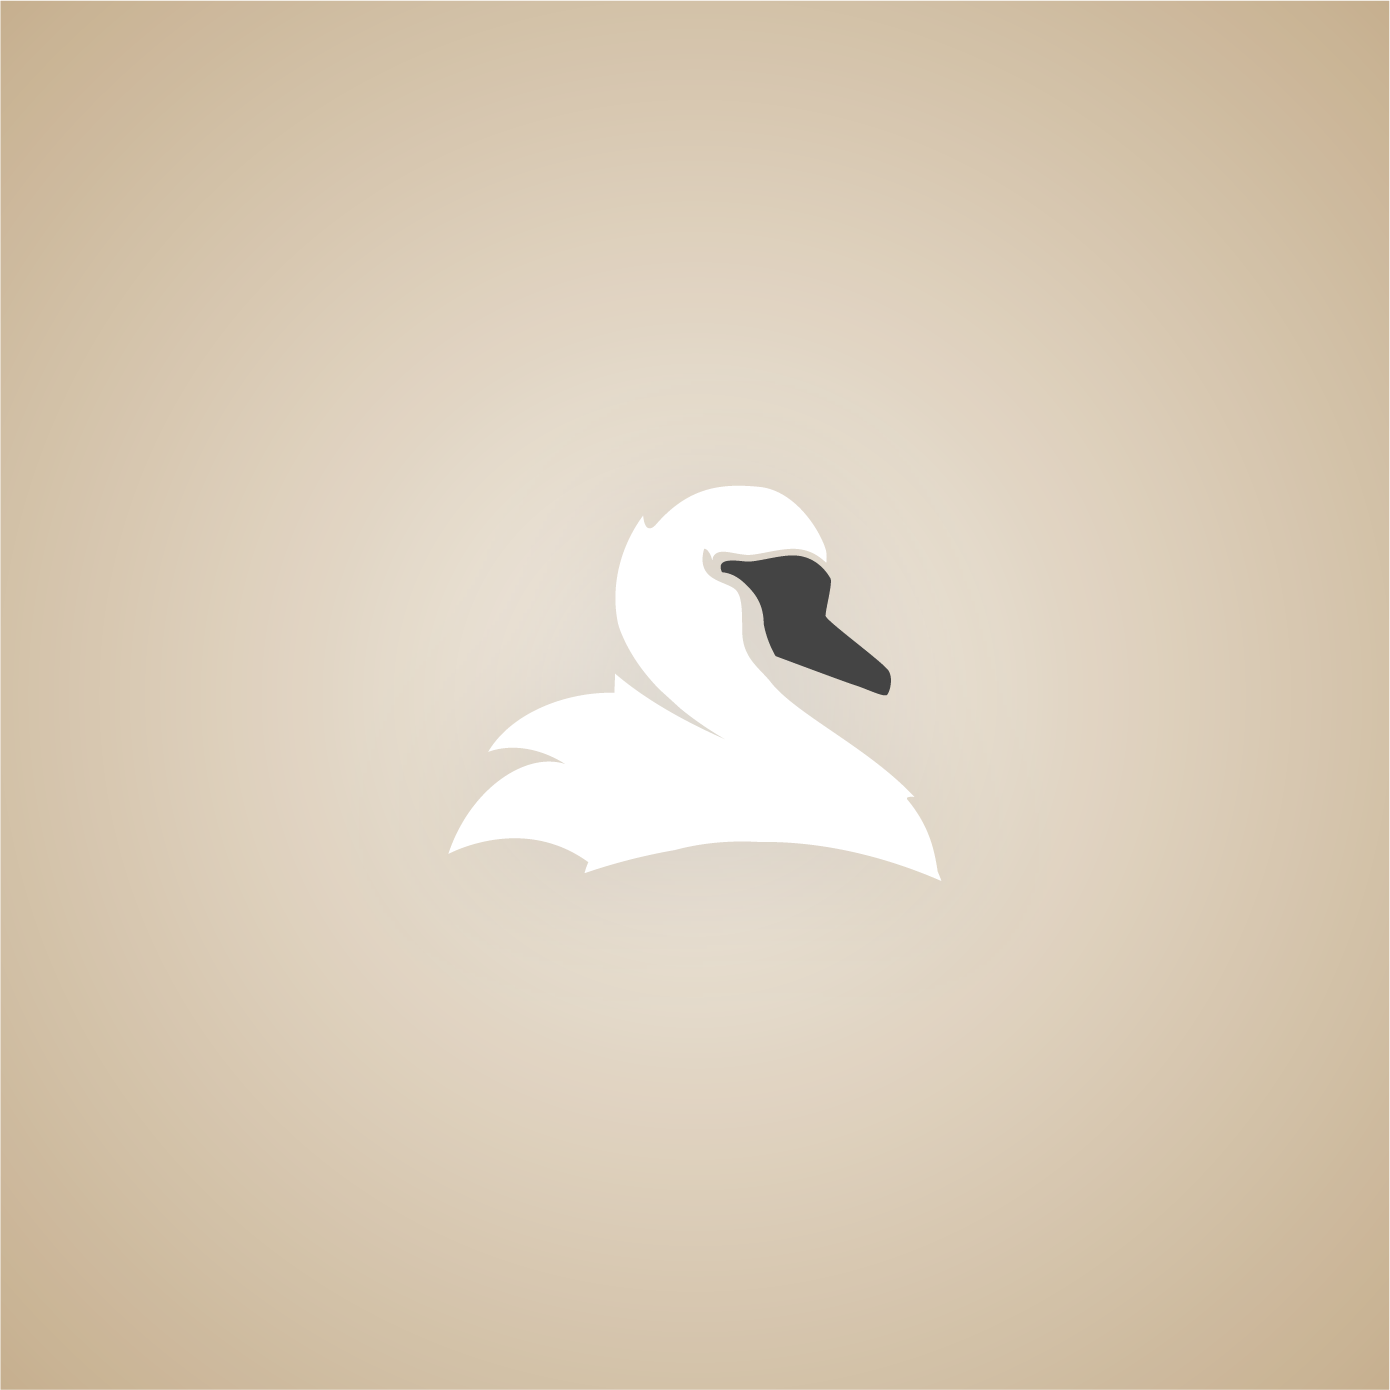 Small logo depicting a white swan with a dark snout